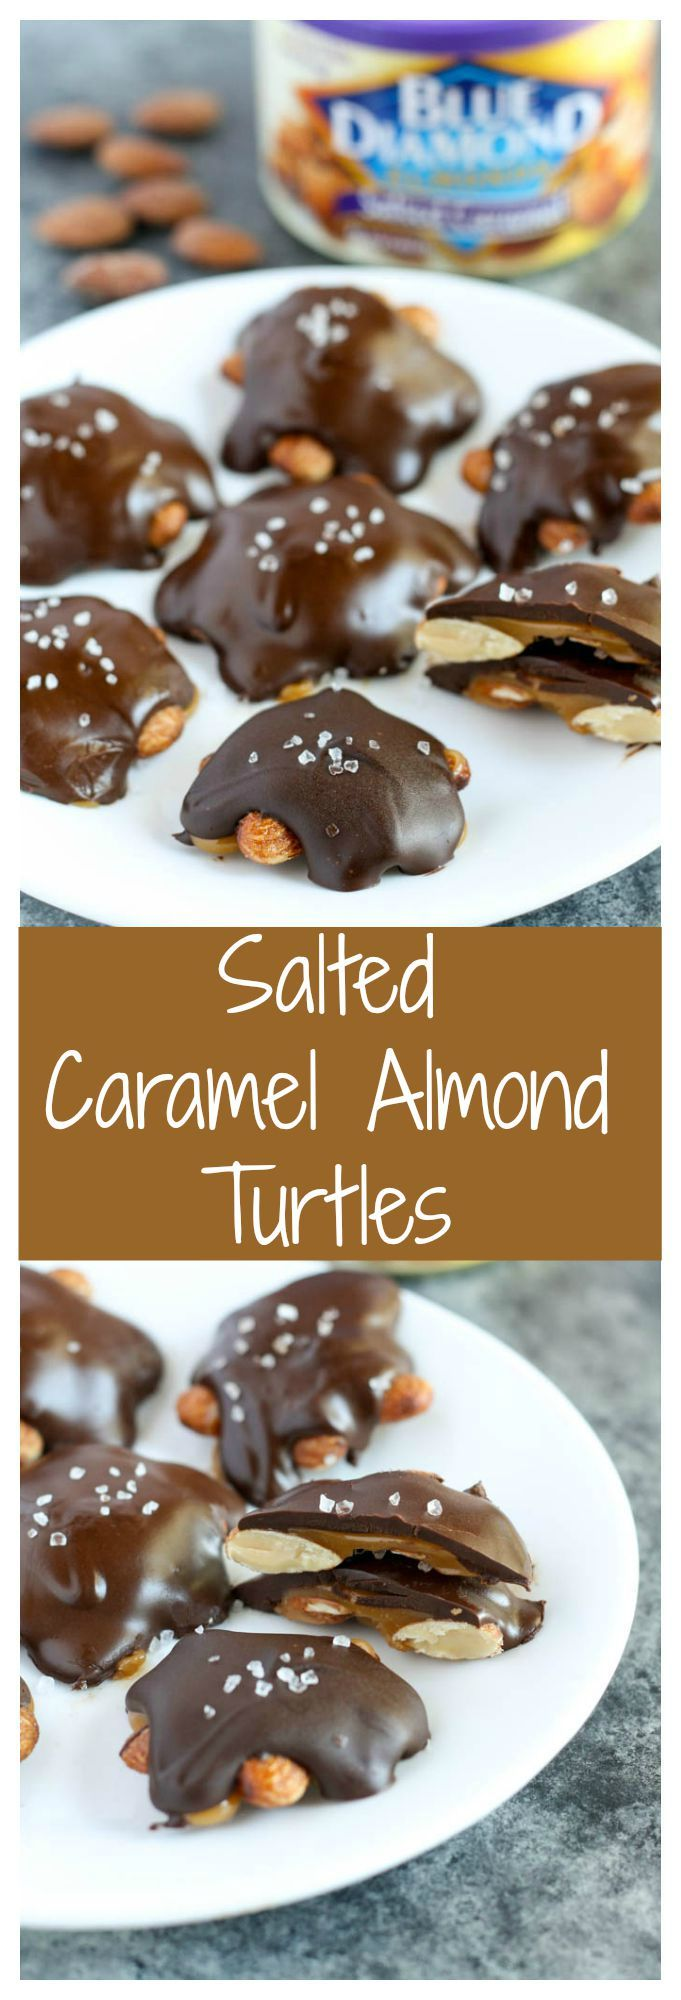 basketball shoes Salted Caramel Almond Turtles